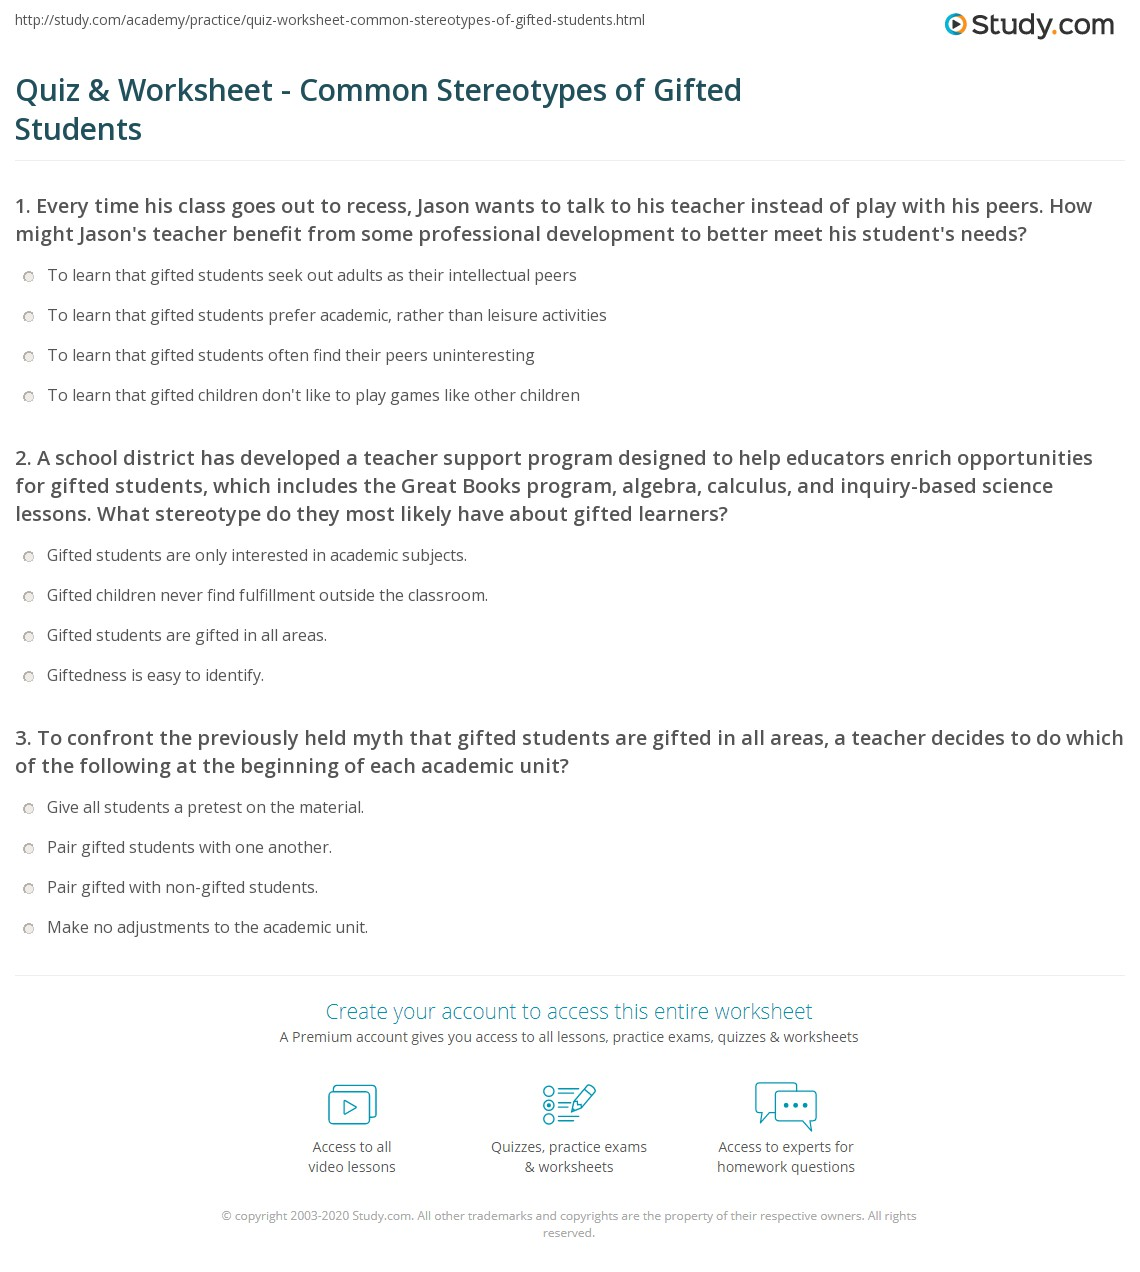 Quiz Worksheet Common Stereotypes Of Gifted Students Study Com